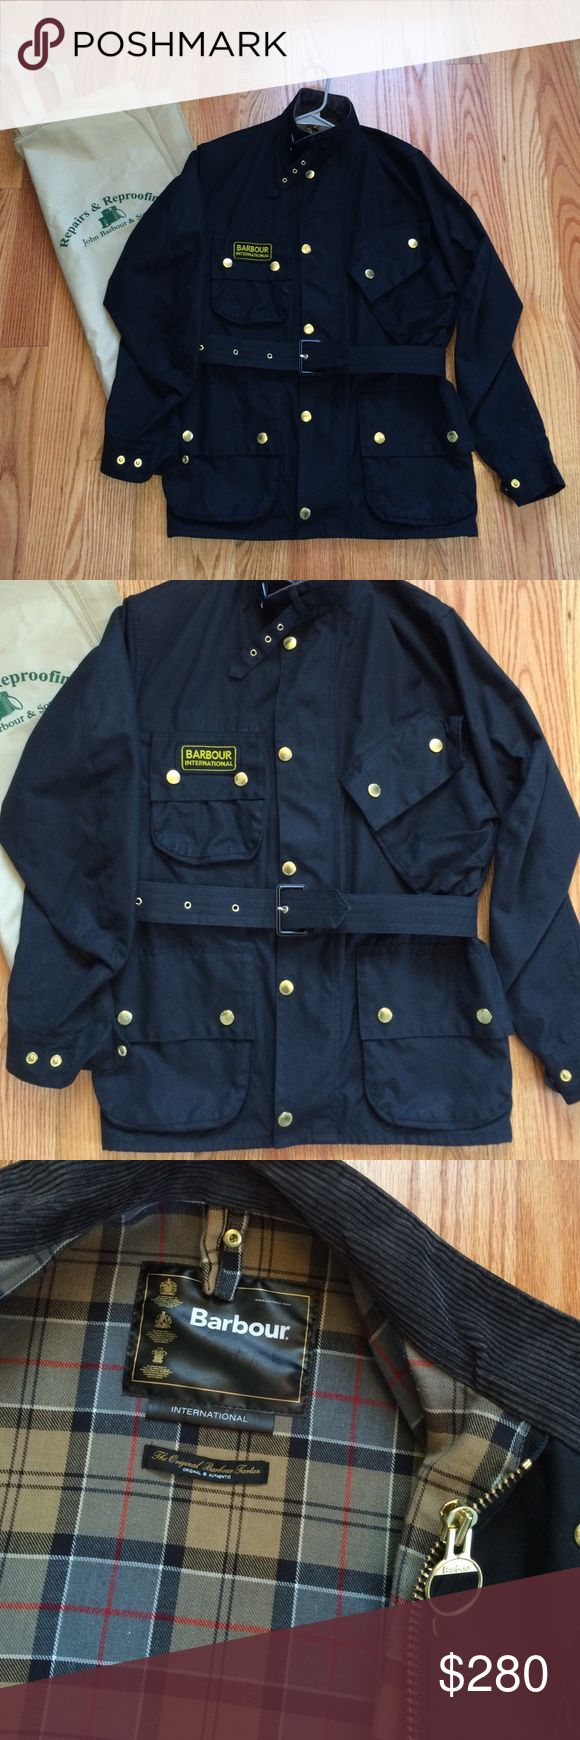 Barbour International jacket Men's size 34. Four front pockets all with buttons. Belt around waist. One inside pocket. Corduroy lined neck. Great condition. Comes with garment bag. Barbour Jackets & Coats Military & Field